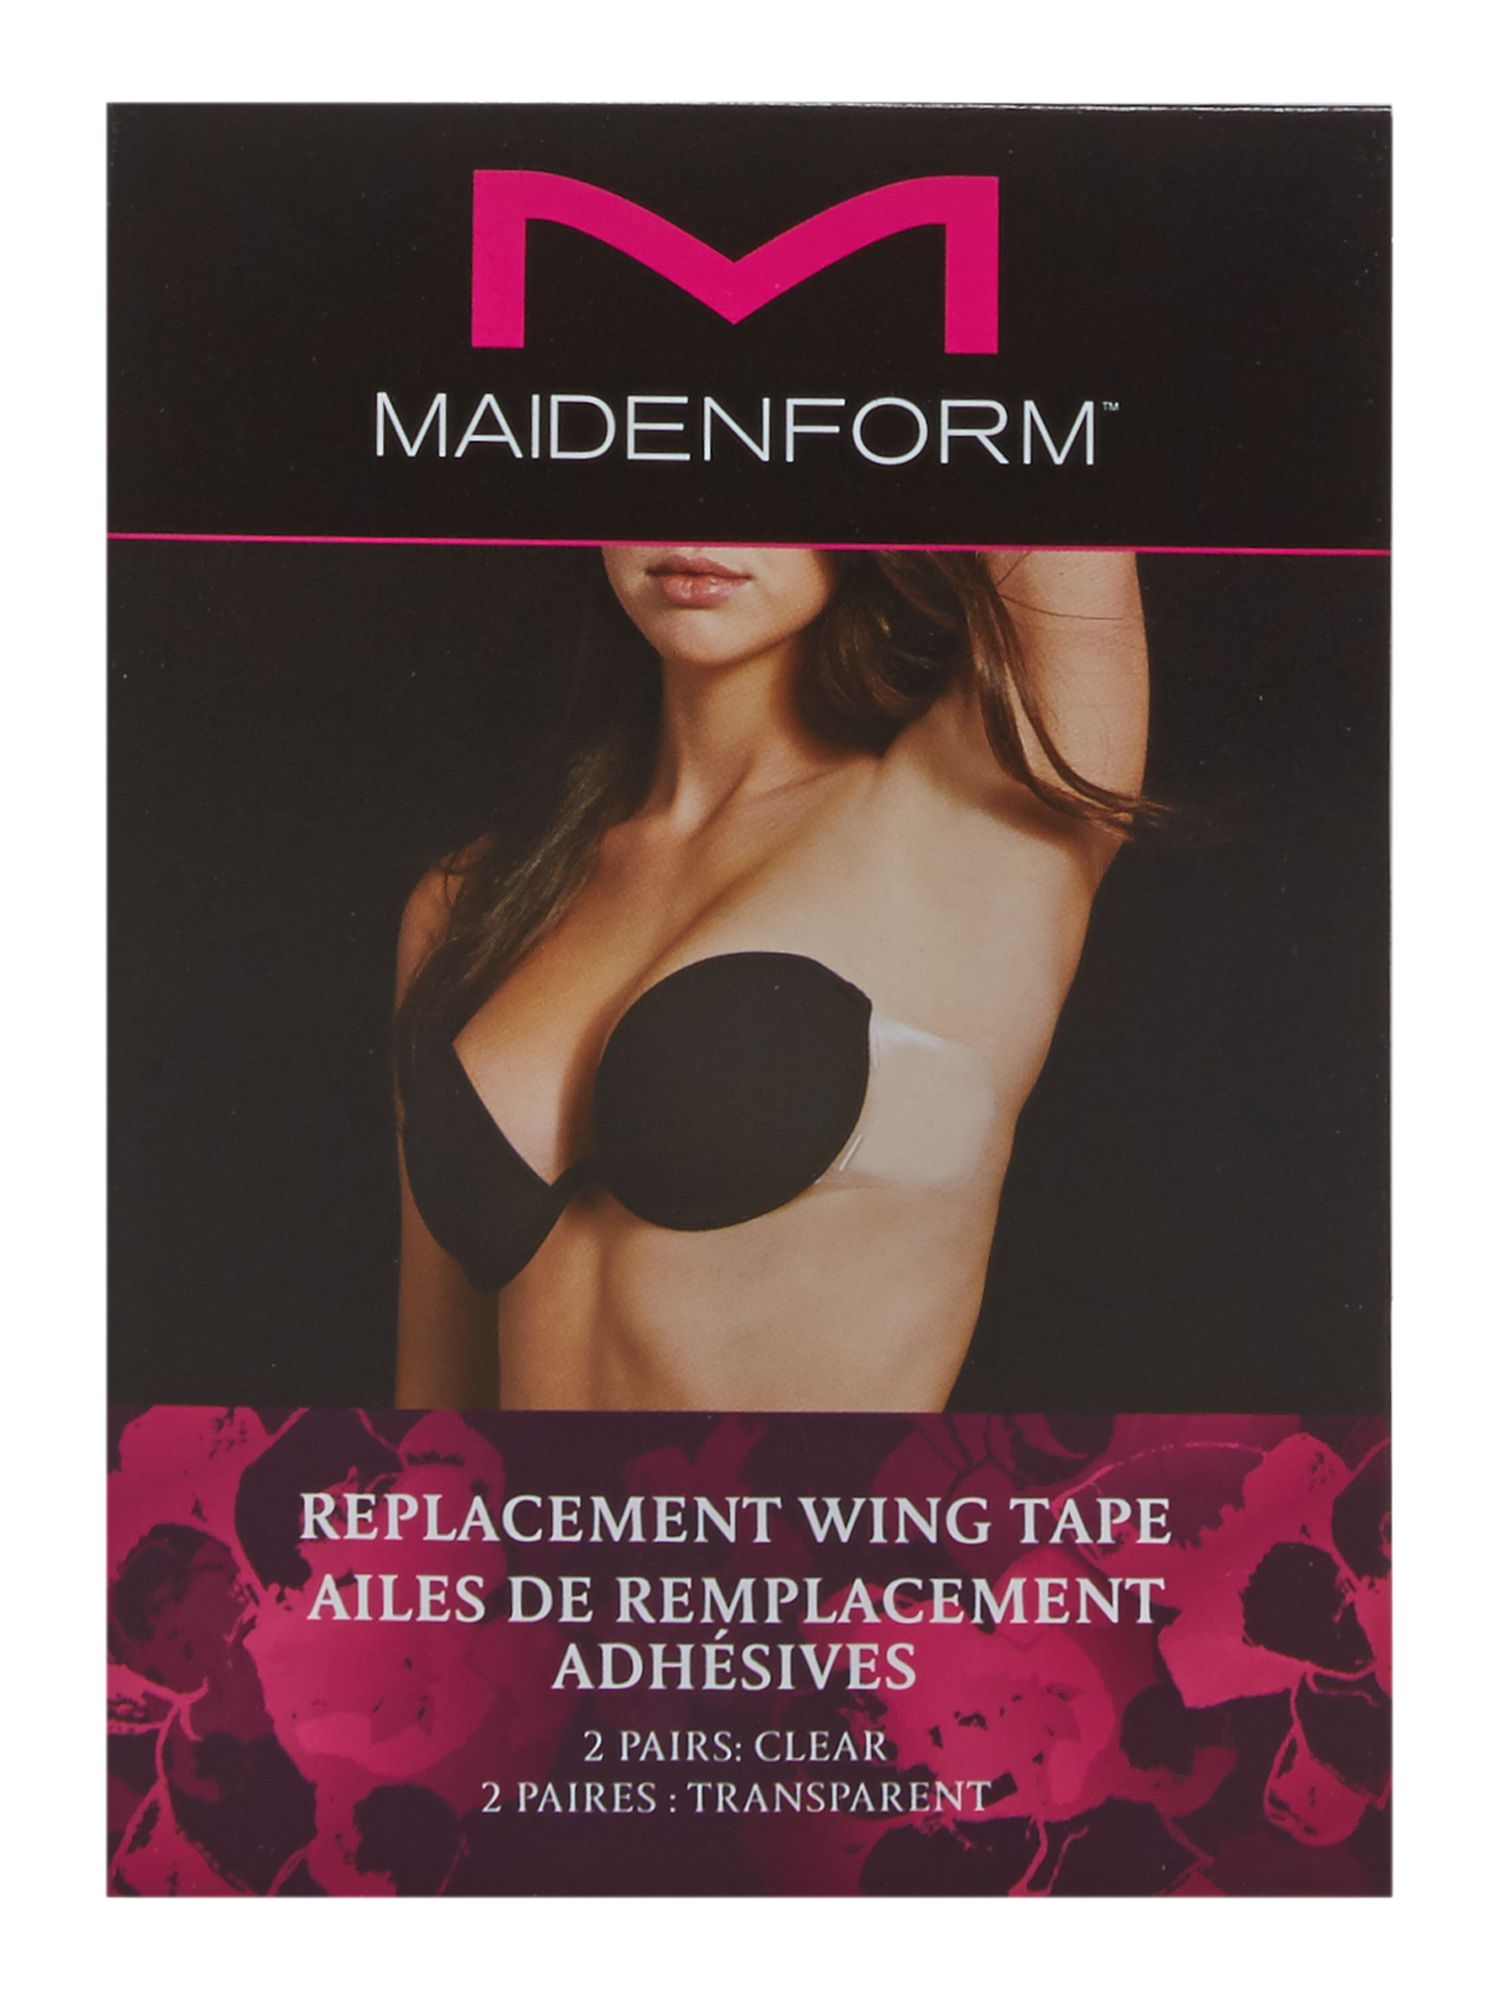 Maidenform Accessories Maidenform Accessories Replacement wing tape, Clear